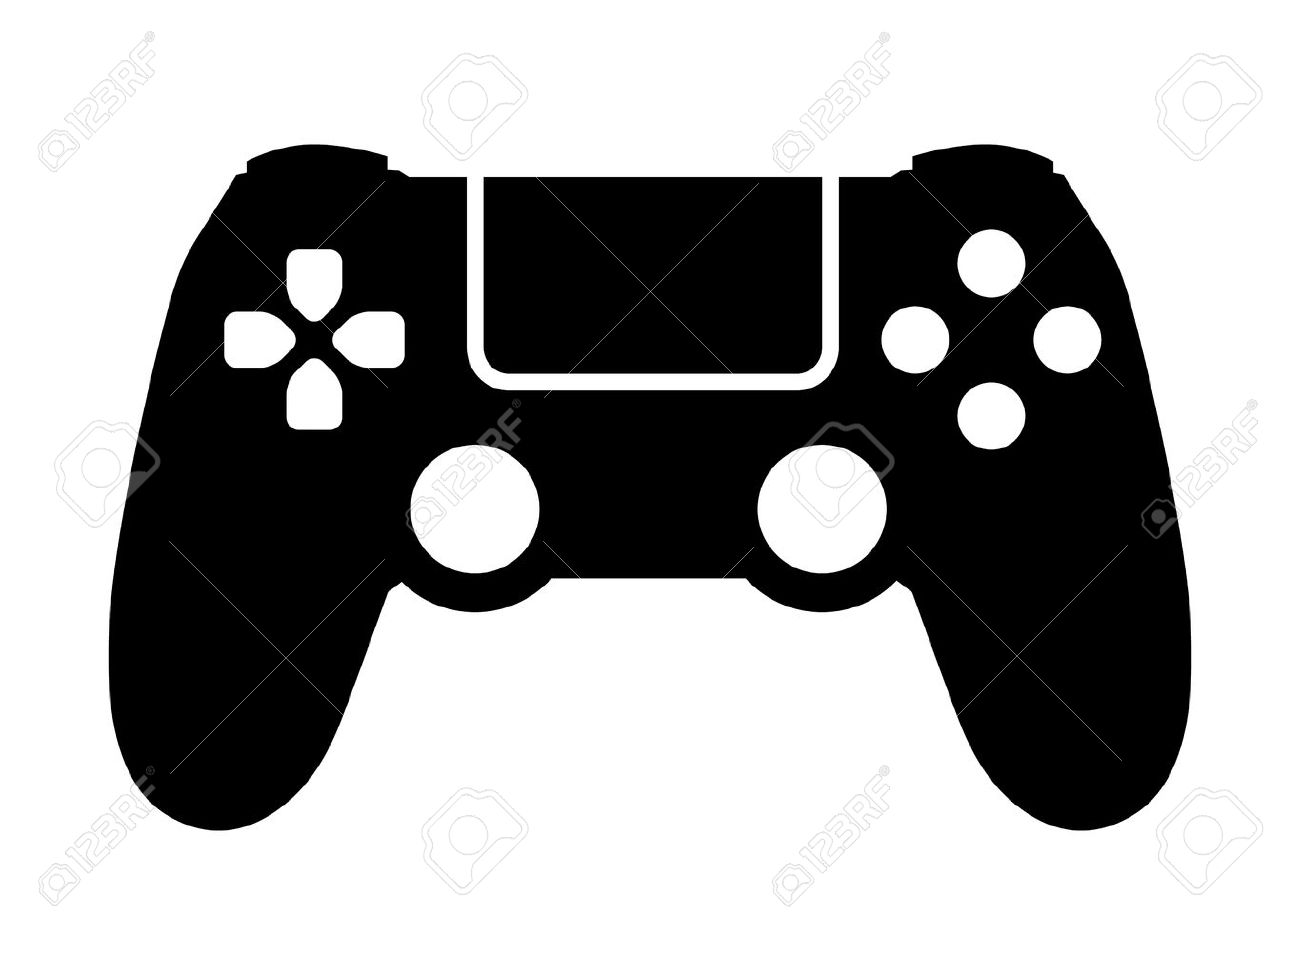 Vector - Video game controller / gamepad flat icon for apps and websites